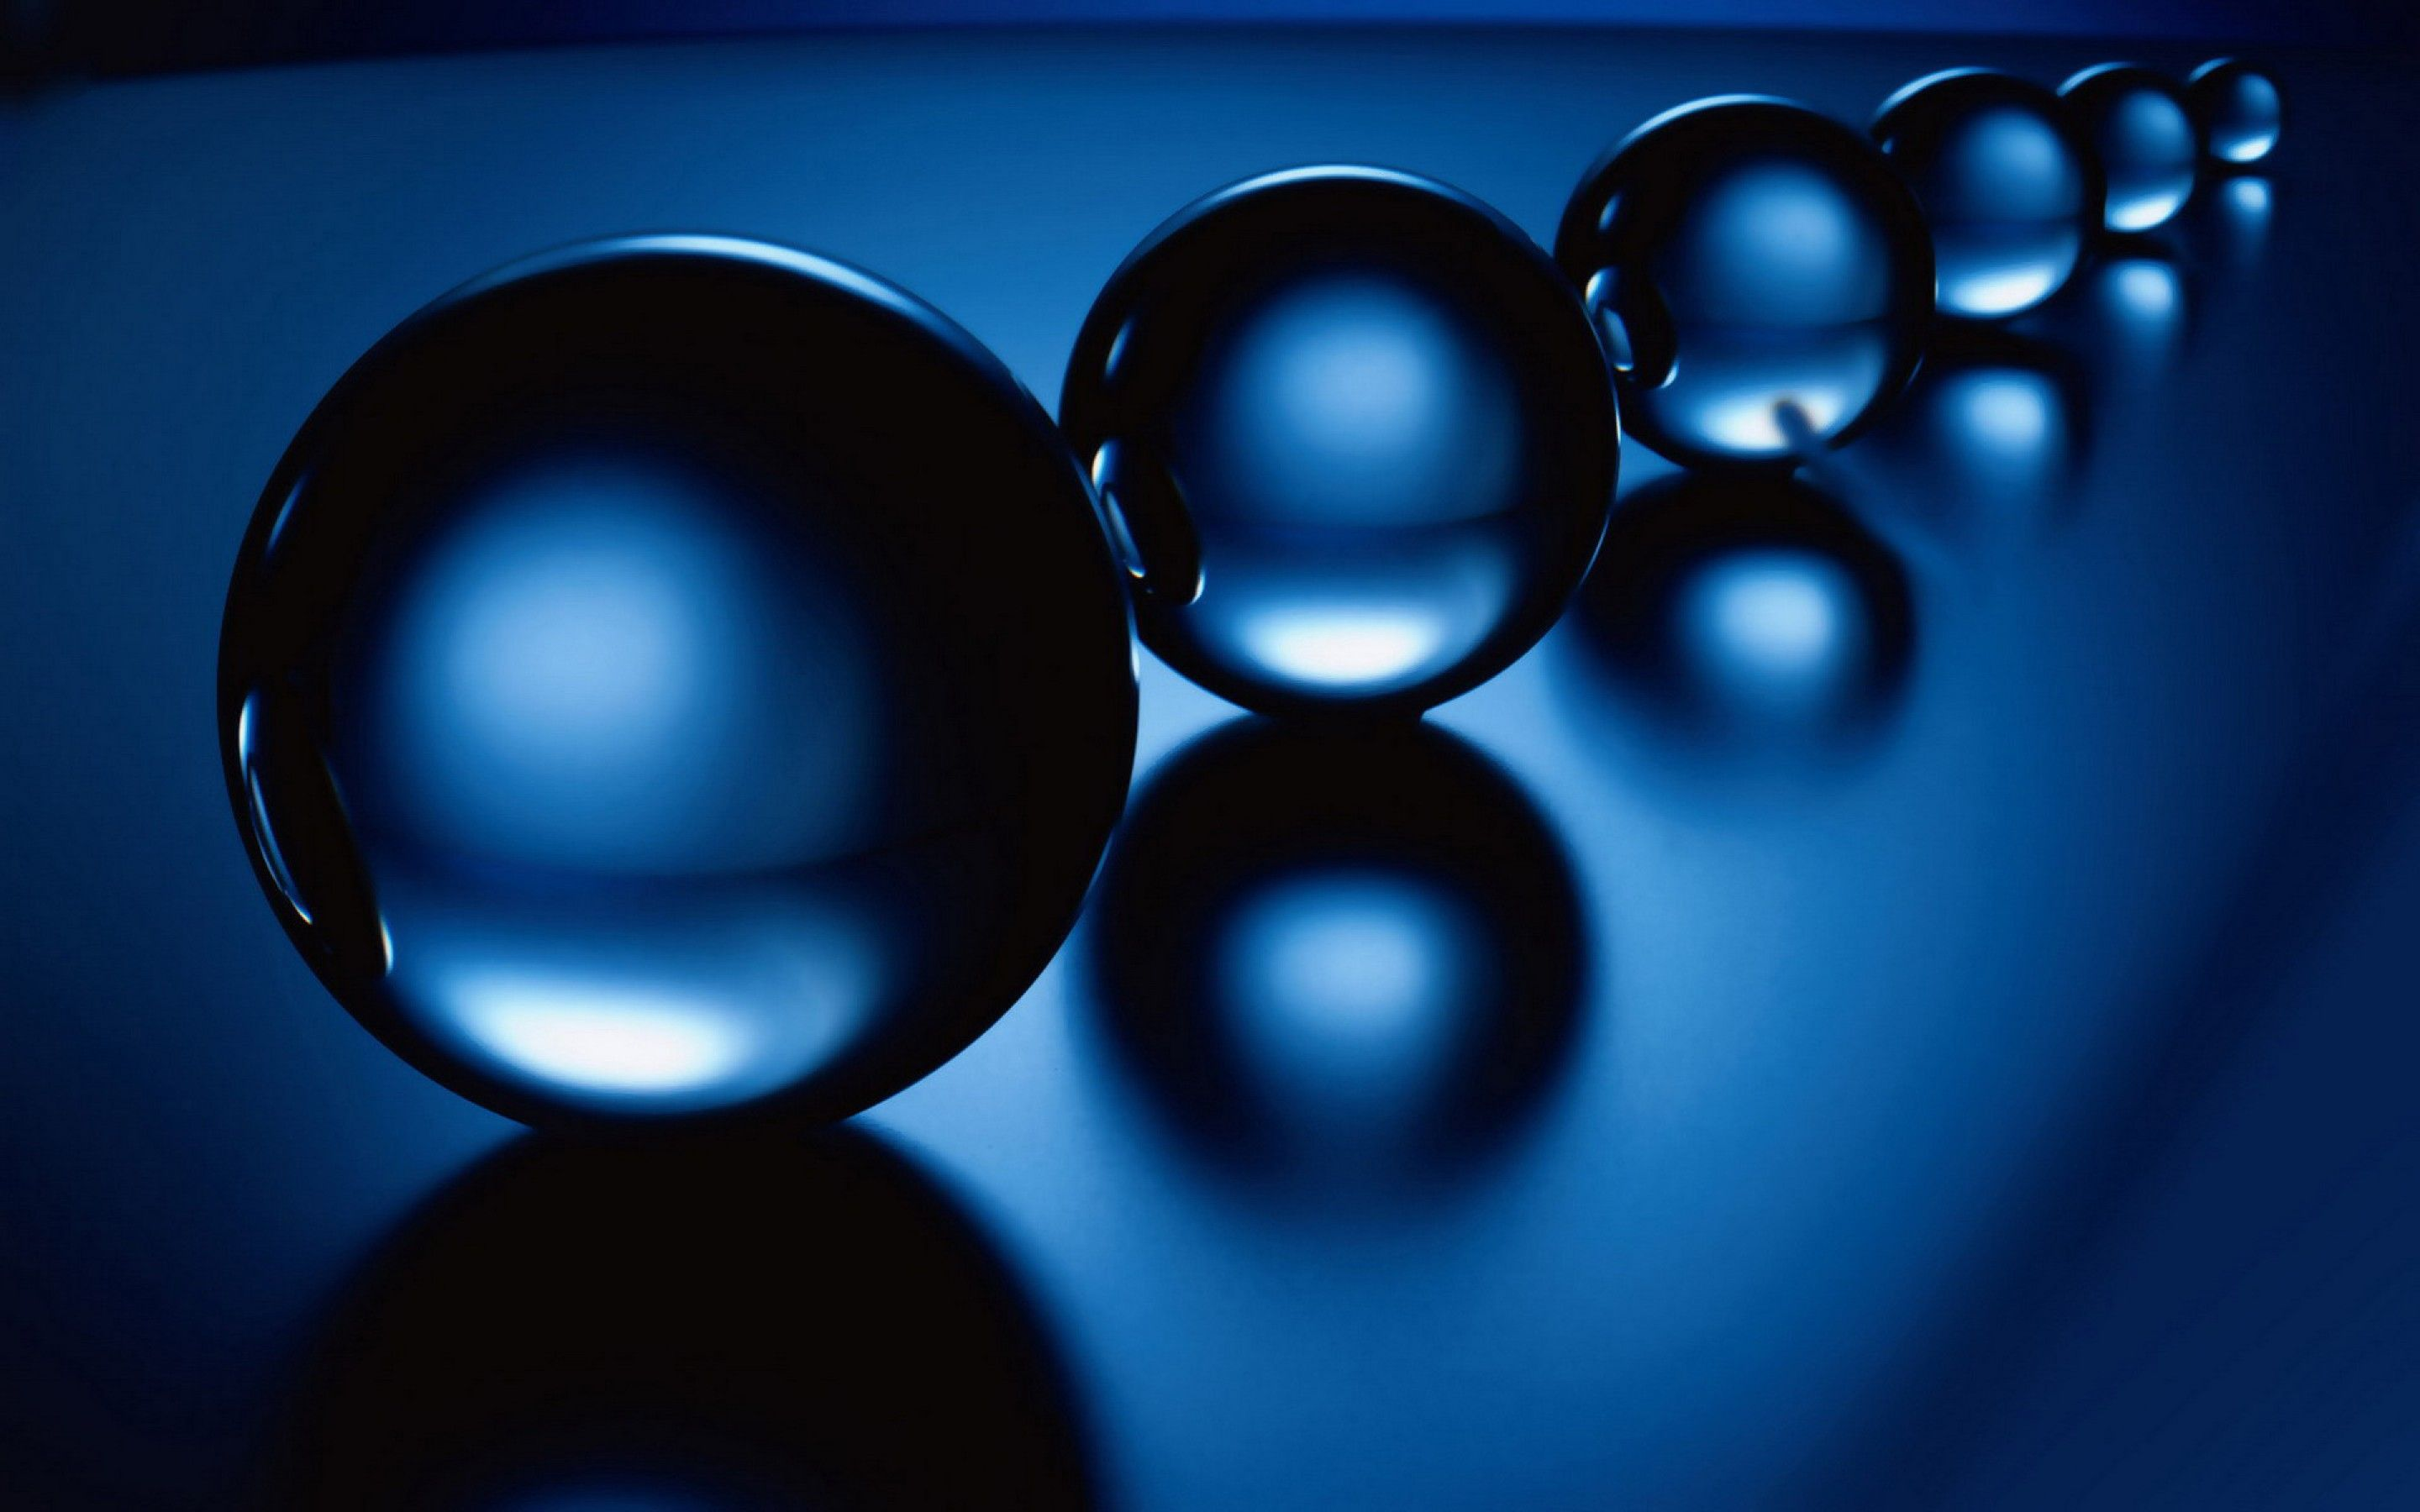 A Series Of Transparent Balls 3d Blue Wallpaper Blue Wallpapers Bright Wallpaper Sky Color